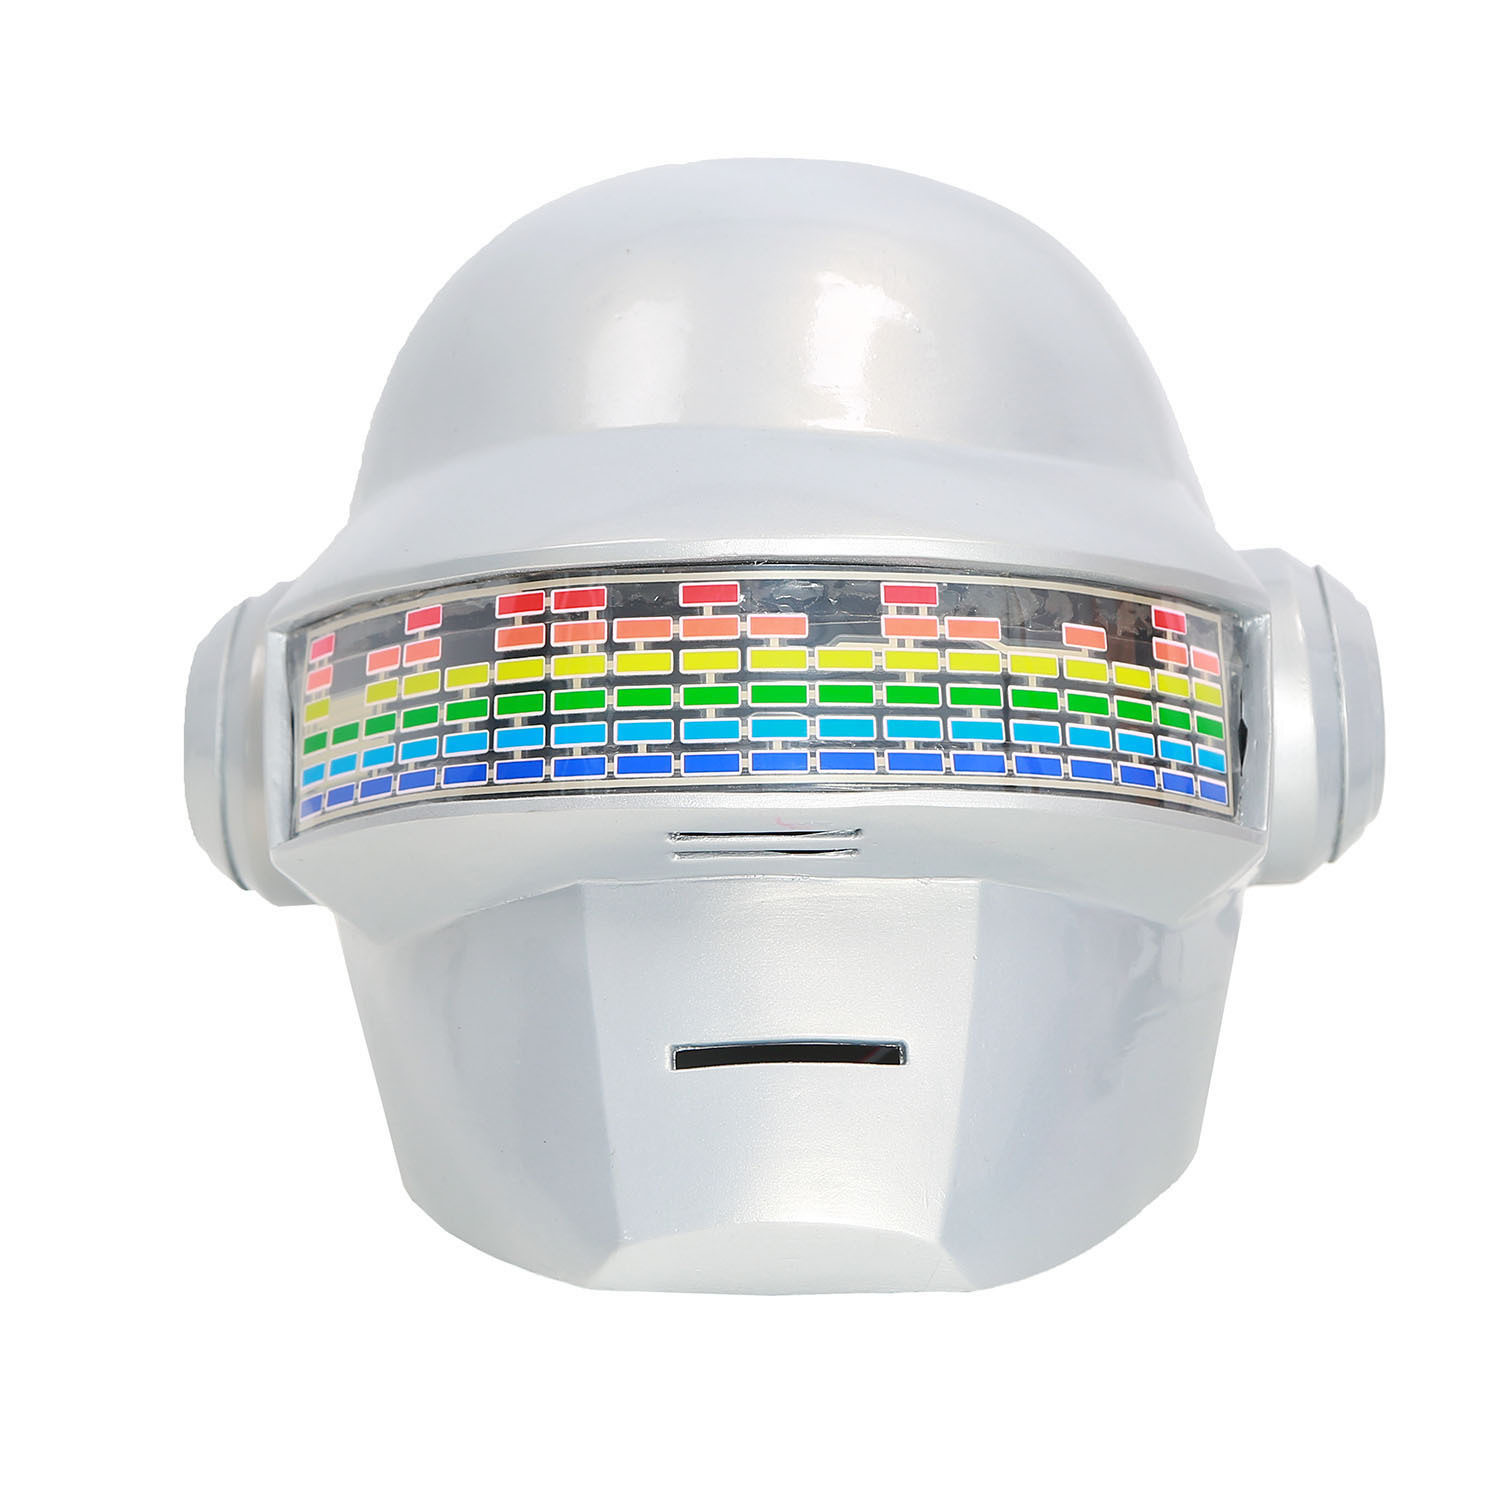 XCOSER Daft Punk Helmet Voice Control Version PVC White Full Head Helmet